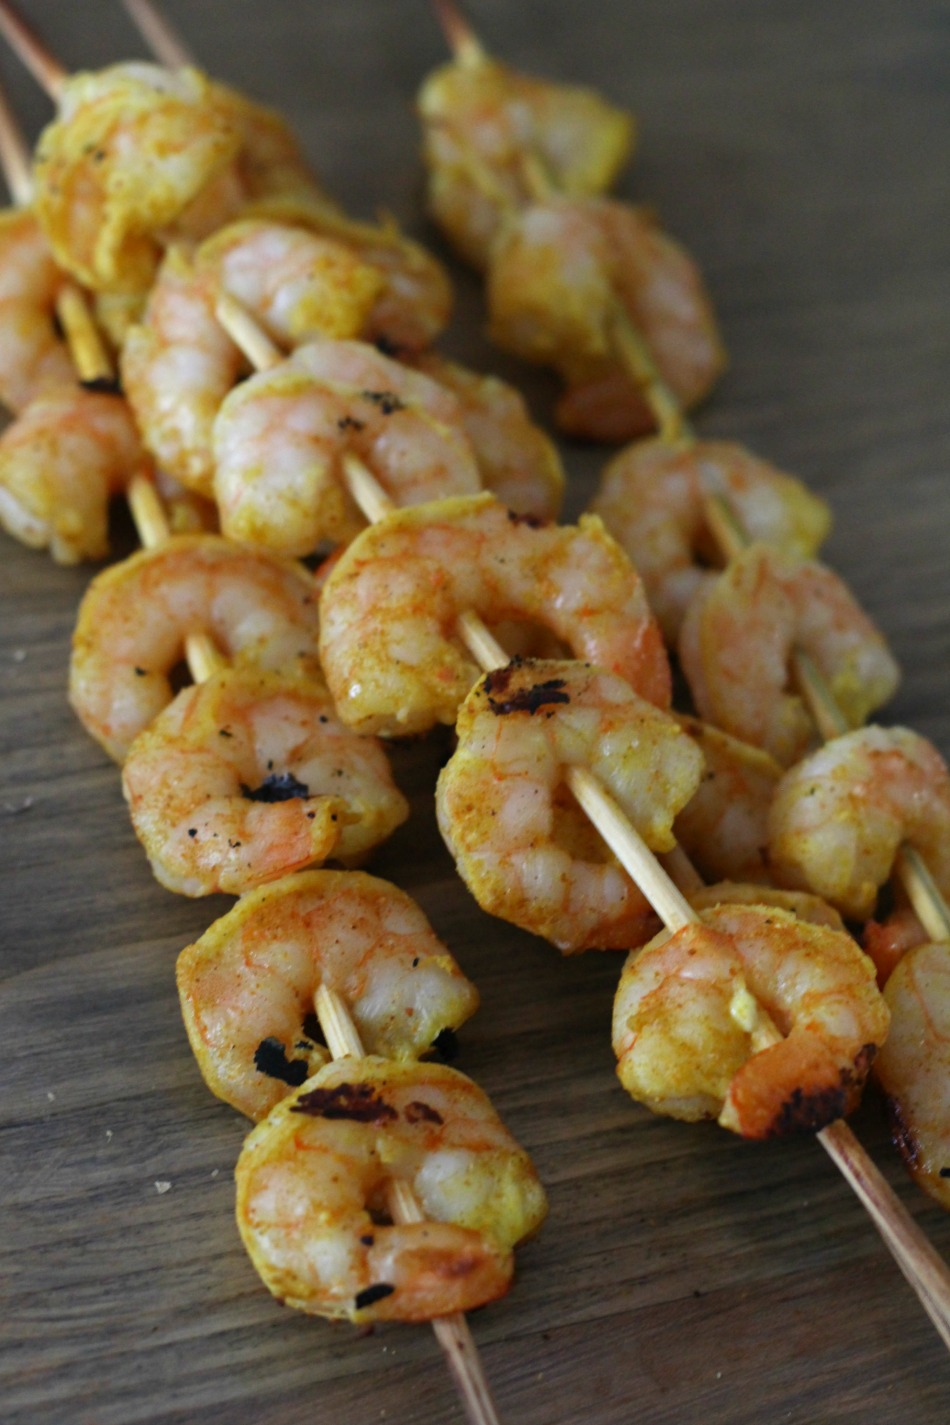 Grilled Tandoori Shrimp Skewers | Growing Up Herbal | You'll love this Indian-inspired recipe for grilled tandoori shrimp skewers!